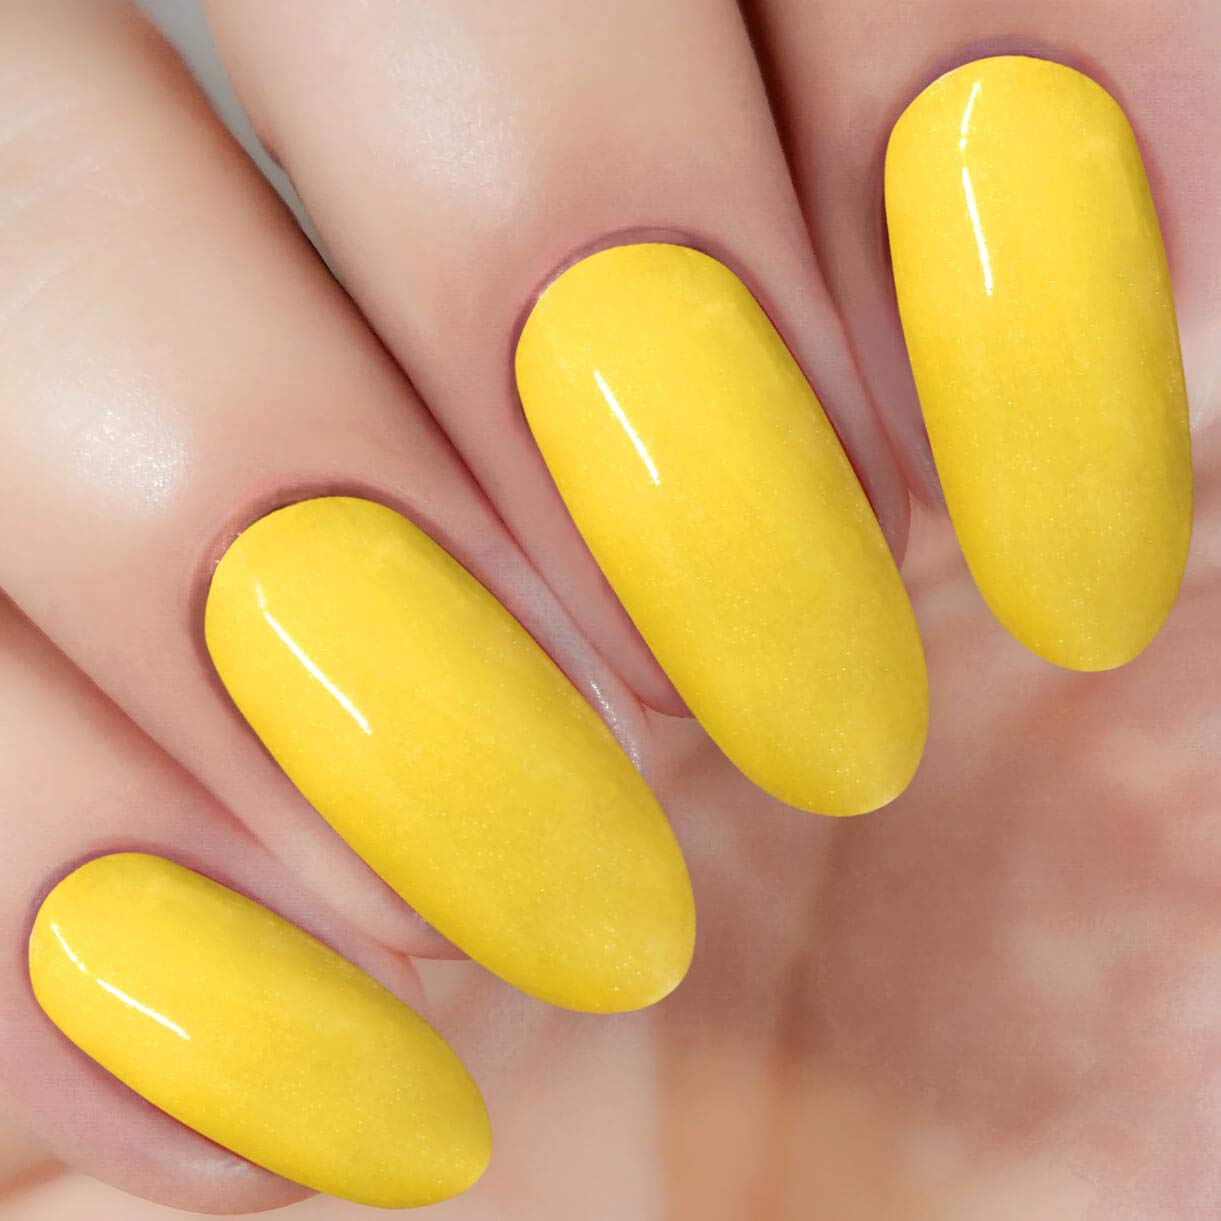 Yellow Dipping Powder (Added Vitamins) 1 Ounce, I.B.N Dipped Acrylic Dip Powder DIY Manicure Salon Home Use (DIP 041)